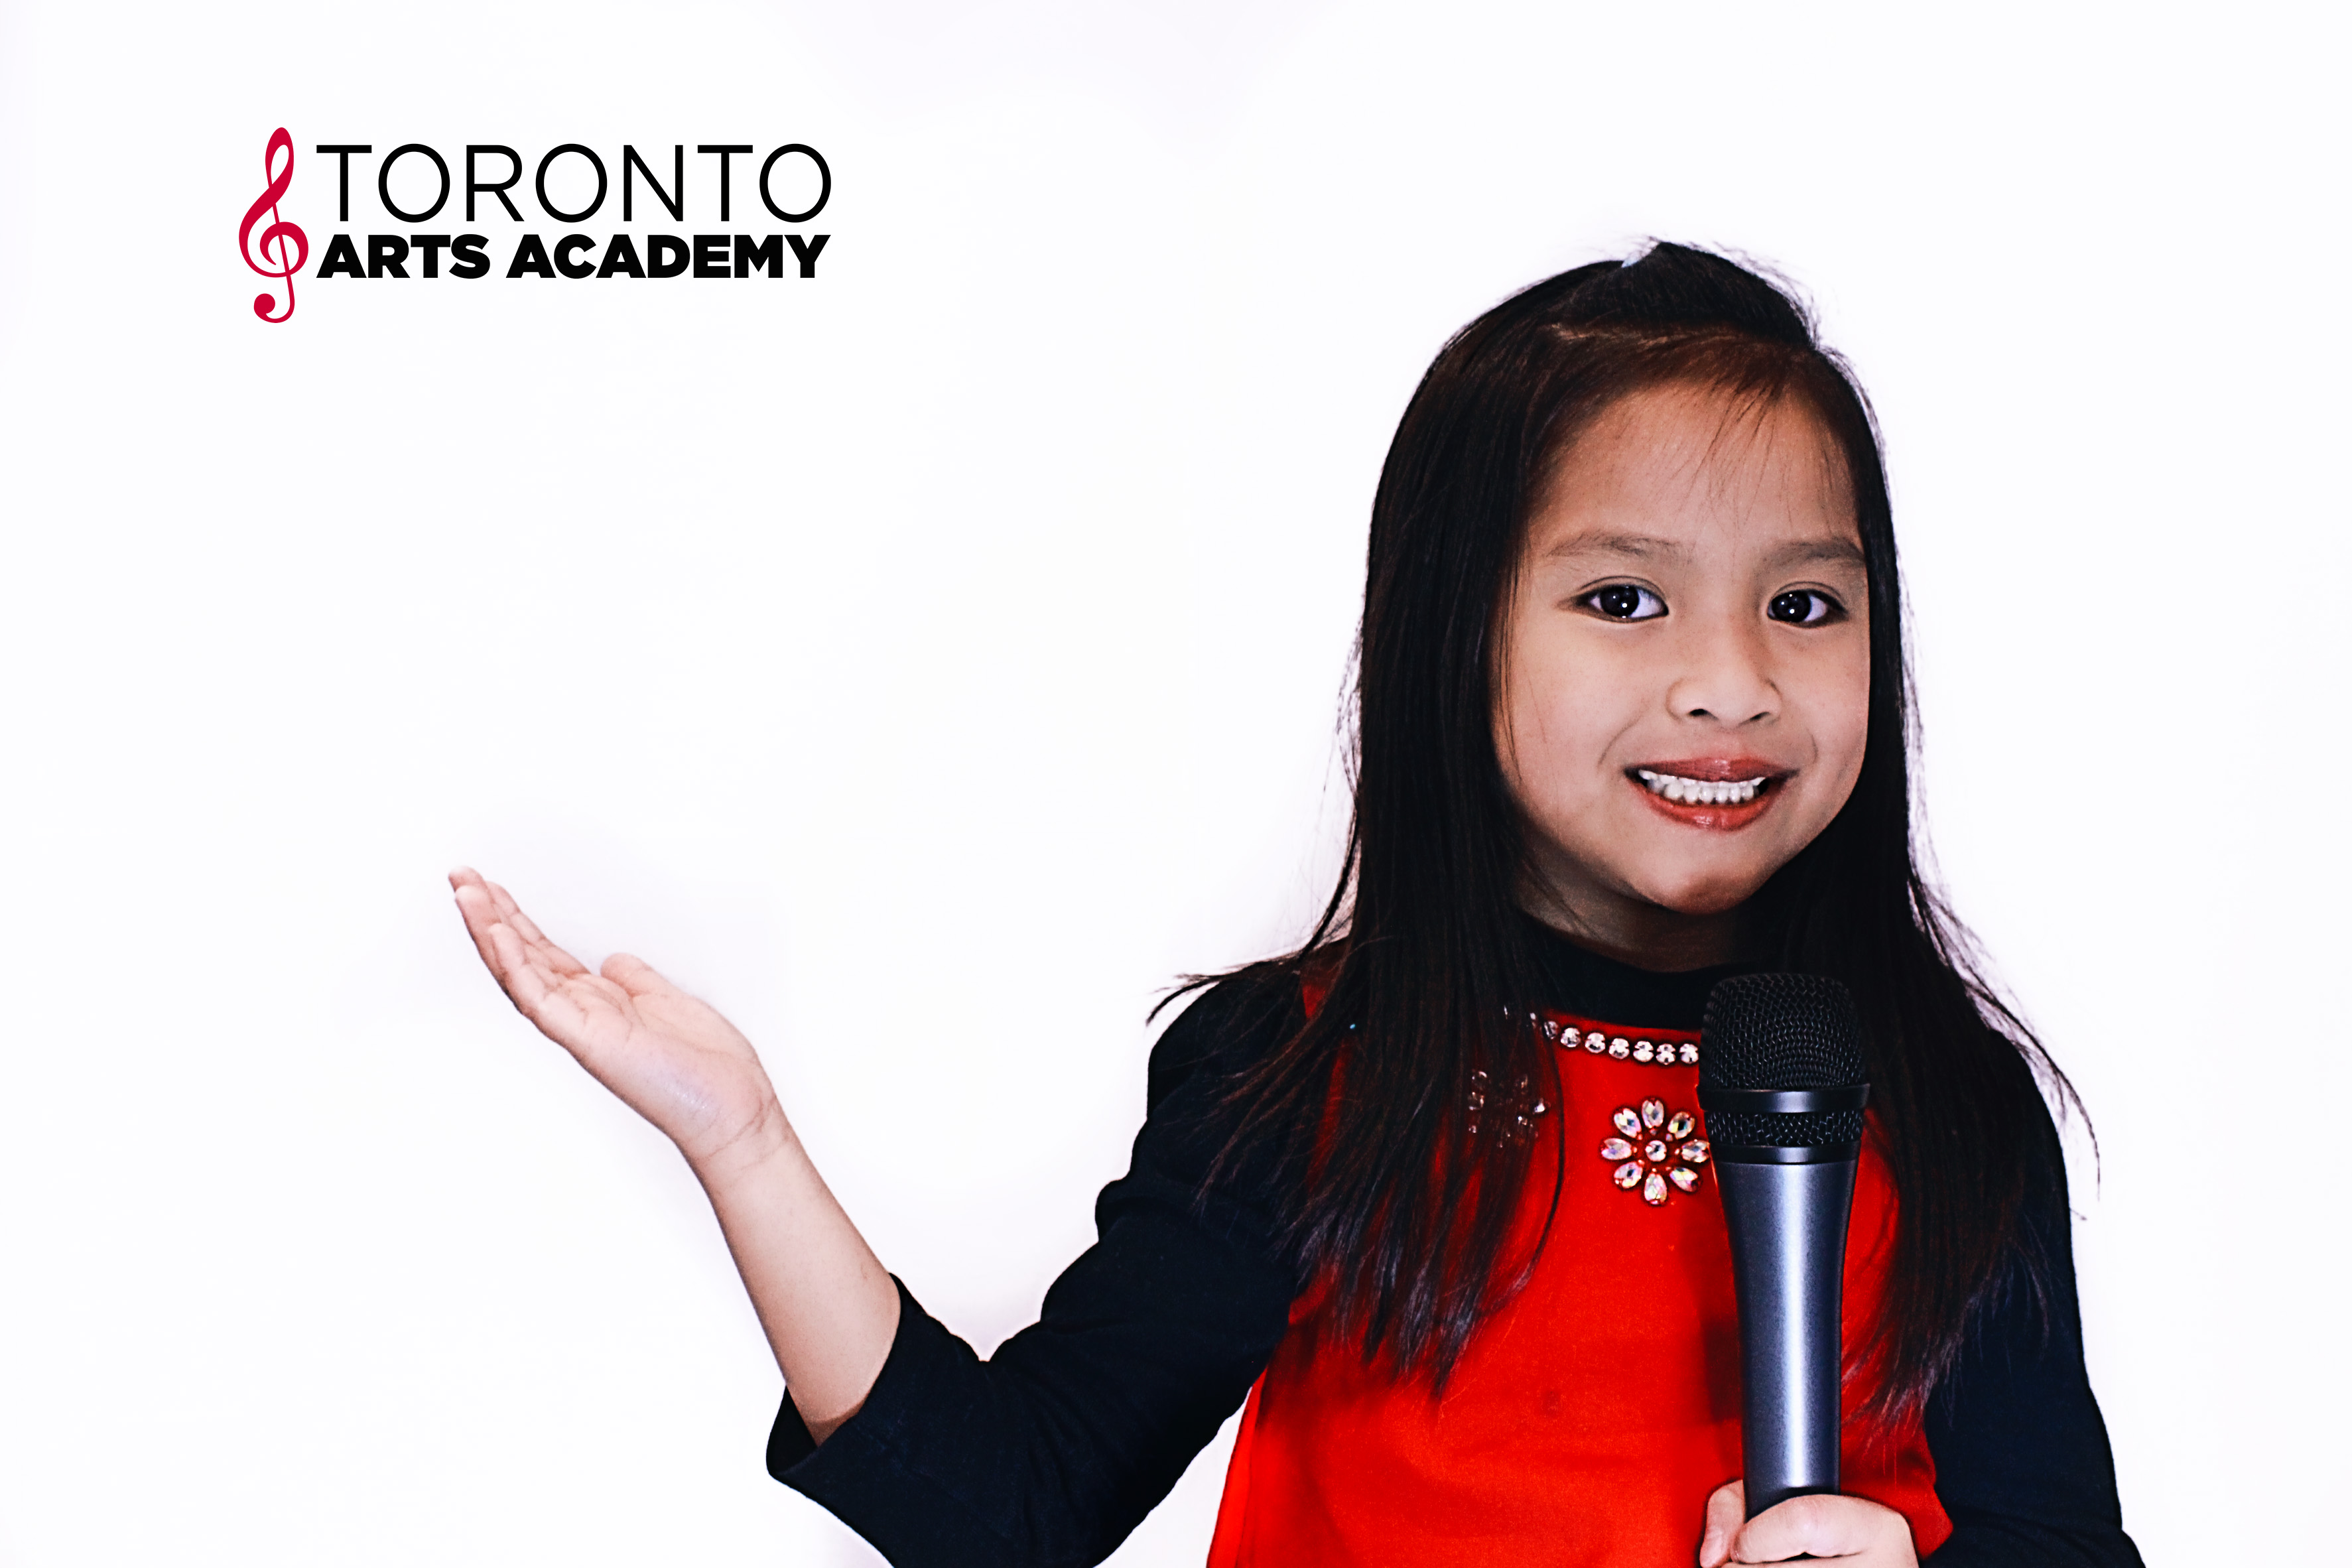 Toronto Arts Academy young girl student singing with mic